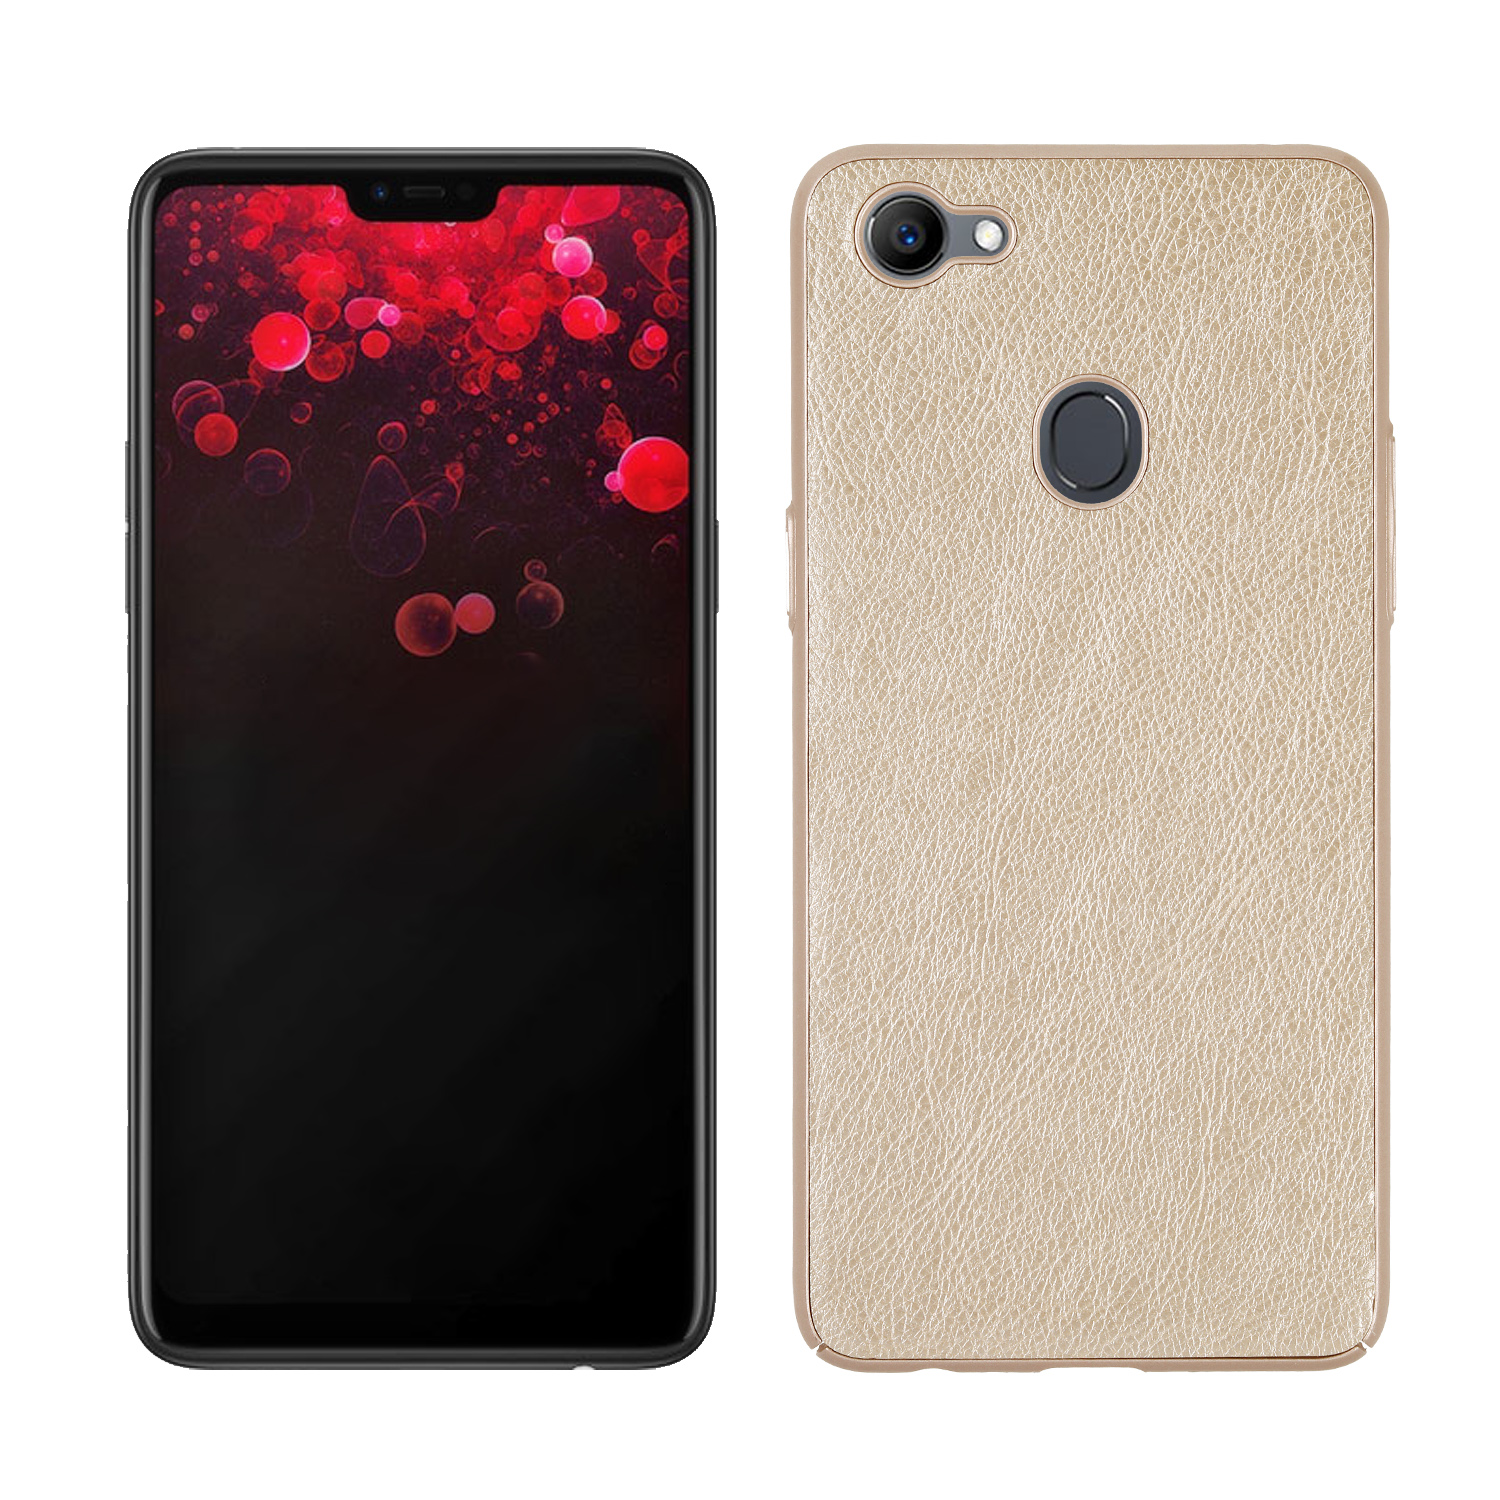 For Oppo F7 Case Business Style PU Leather PC Hard Back Cover Phone Bag For Oppo F7 Case Protective Skin (E0424)-in Fitted Cases from Cellphones & Telecommunications on Aliexpress.com | Alibaba Group